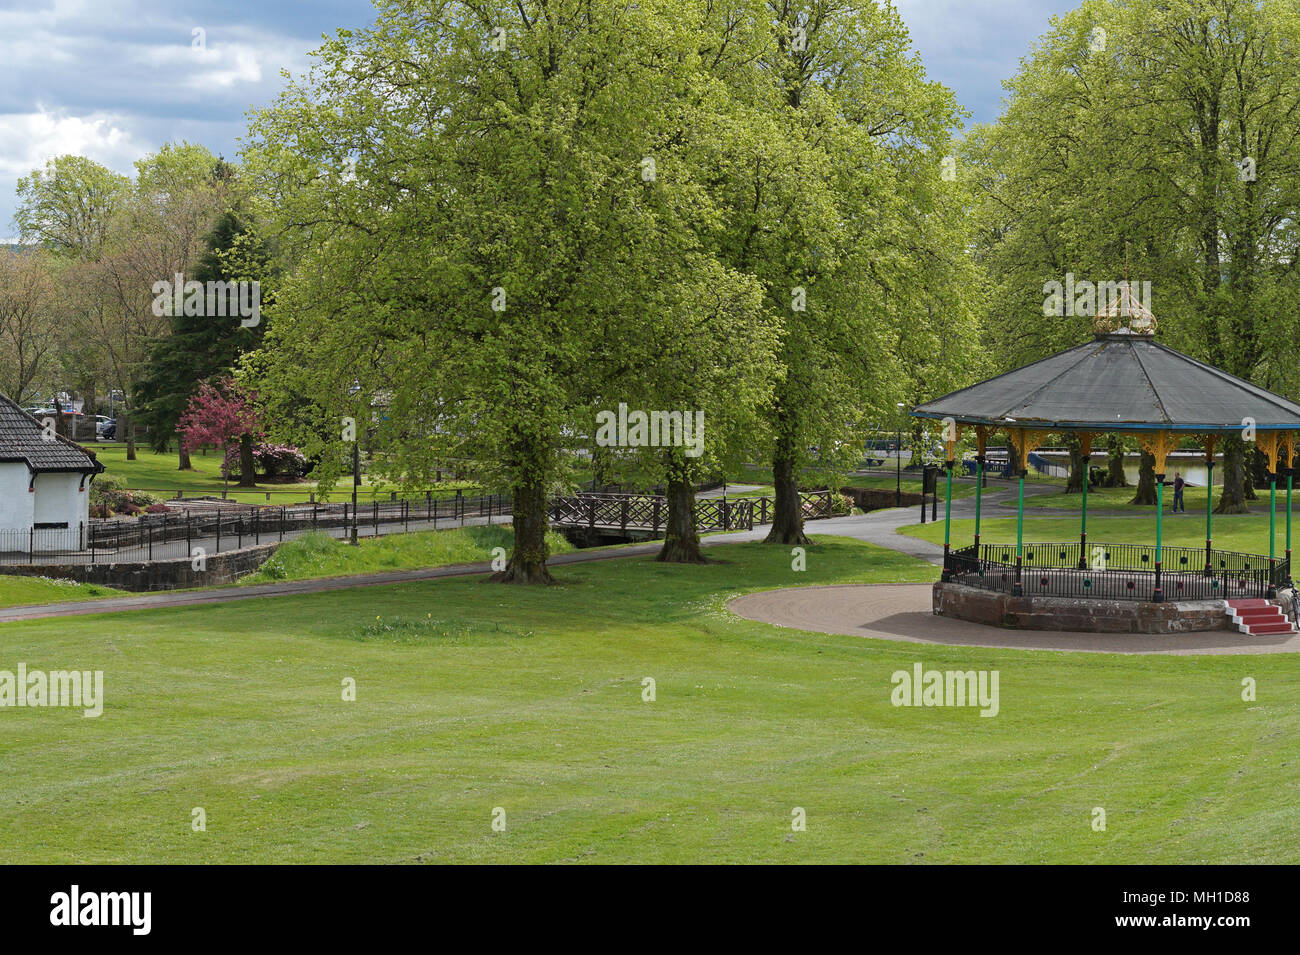 Strathaven Park Bandstand, John Hastie Park, South Lanarkshire on a Sunny Day Stock Photo